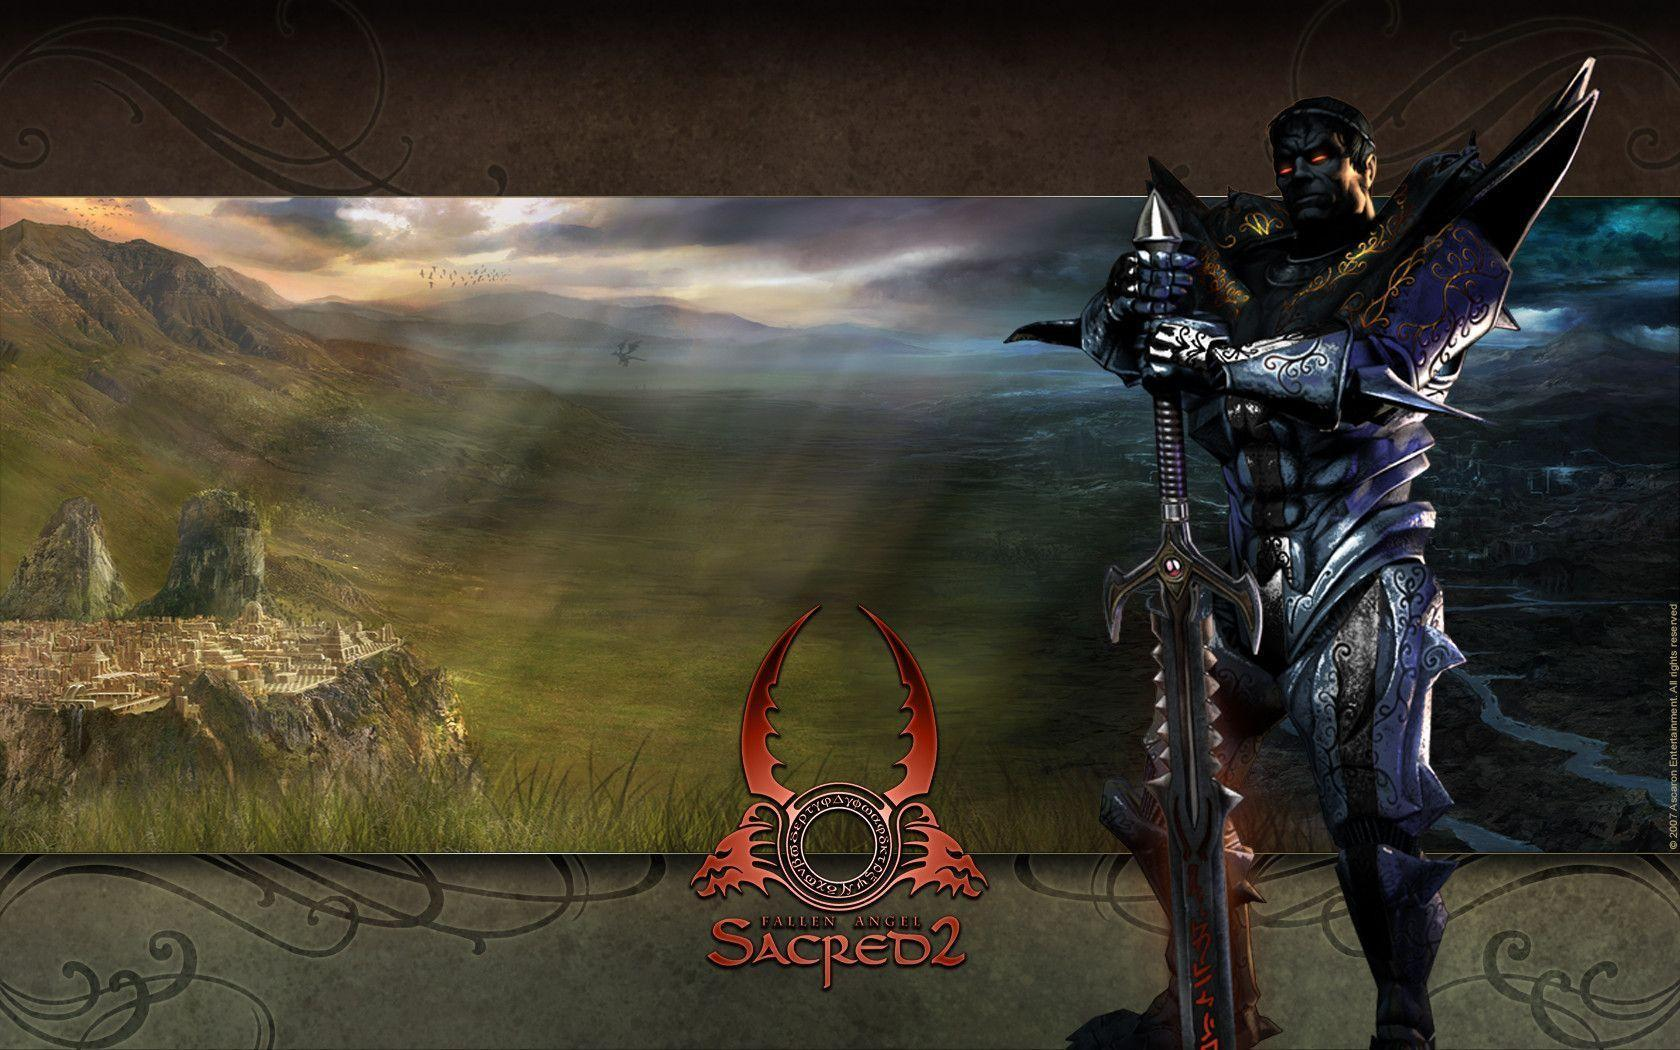 Sacred 2 Wallpapers Wallpaper Cave